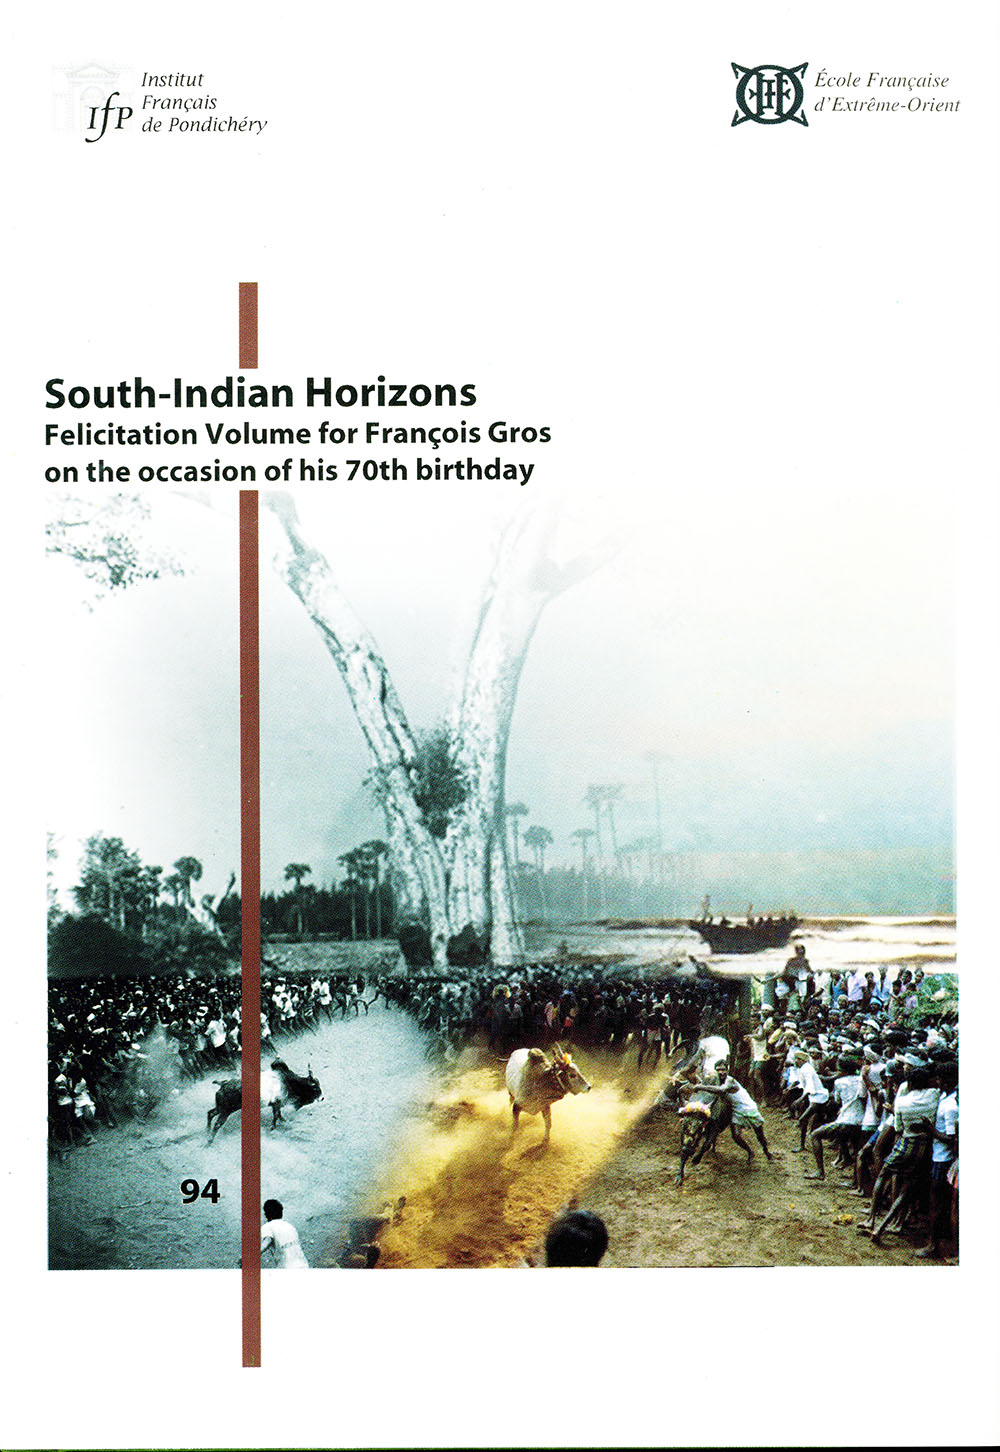 South Indian horizons. Felicitation volume for François Gros on the occasion of his 70th birthday